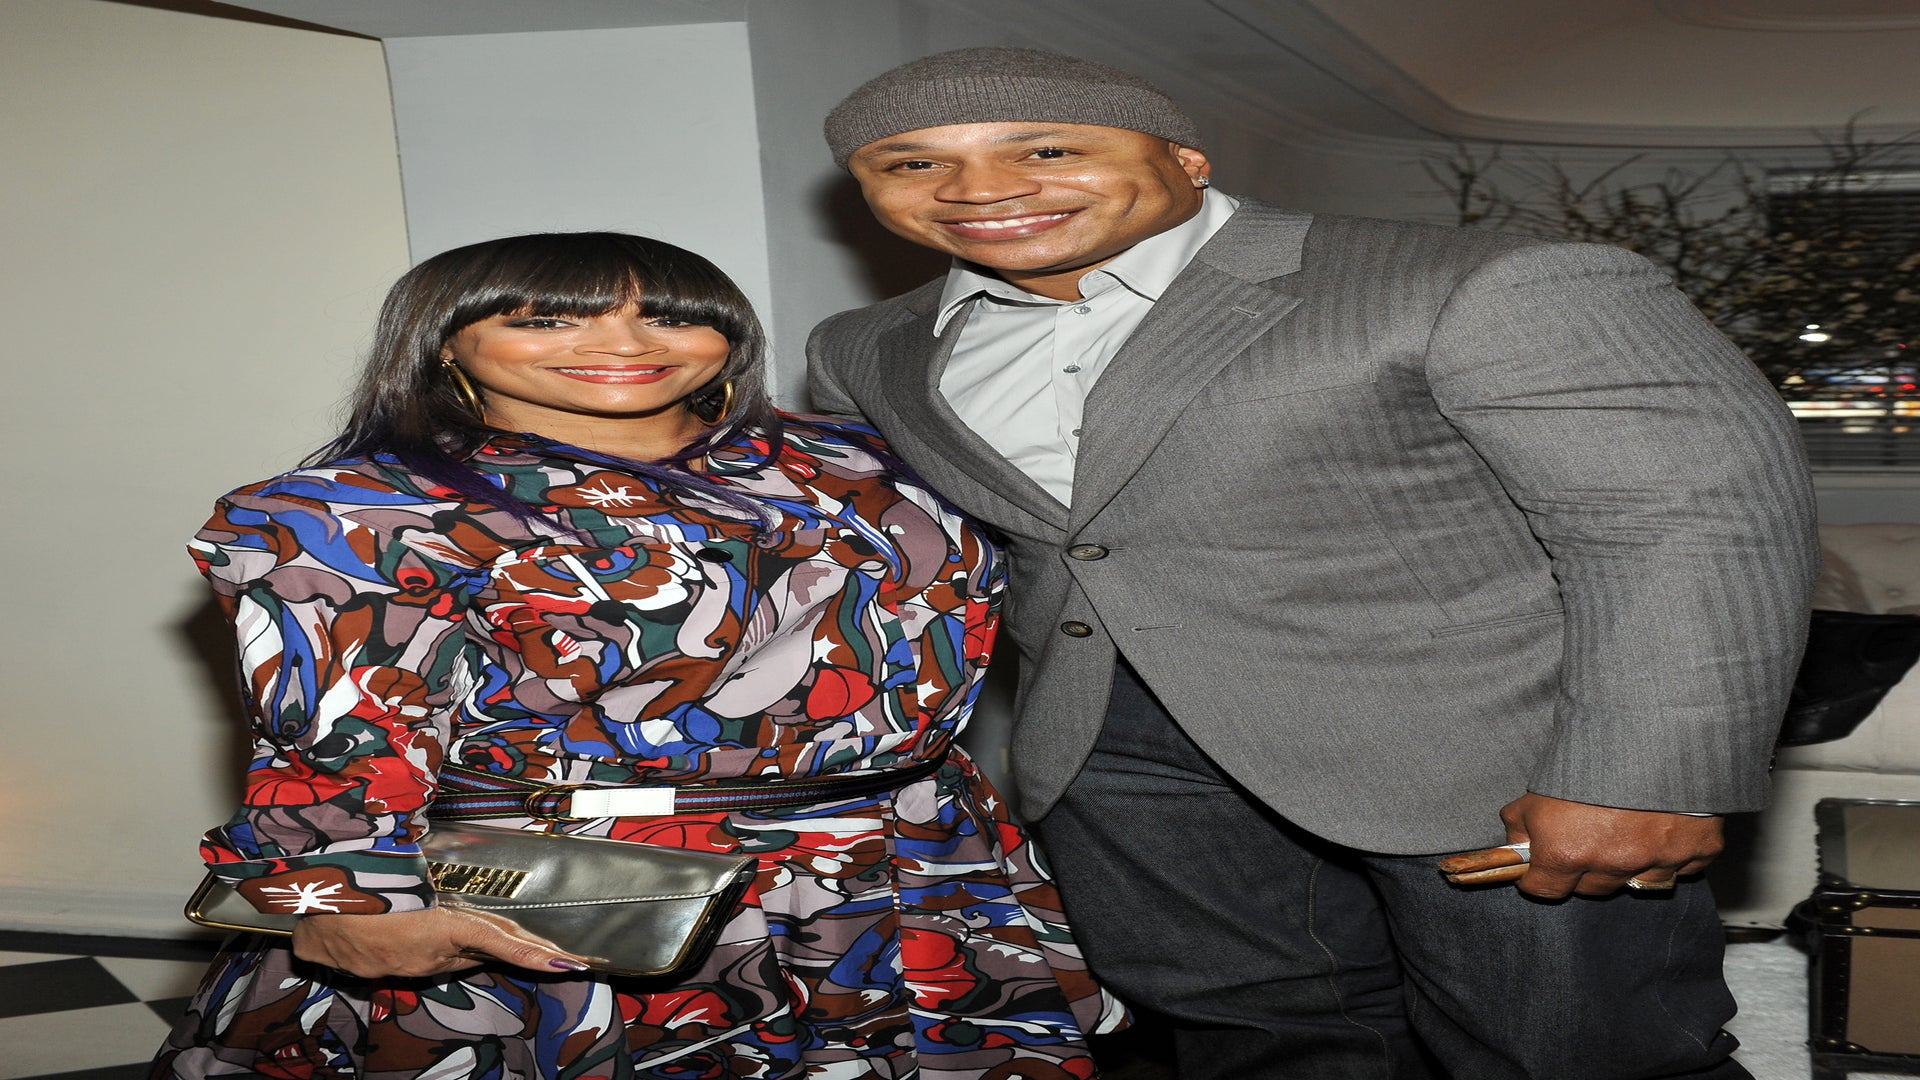 LL Cool J's Wife Threw A Surprise Party For Her King To Celebrate His Forthcoming Kennedy Center Honor